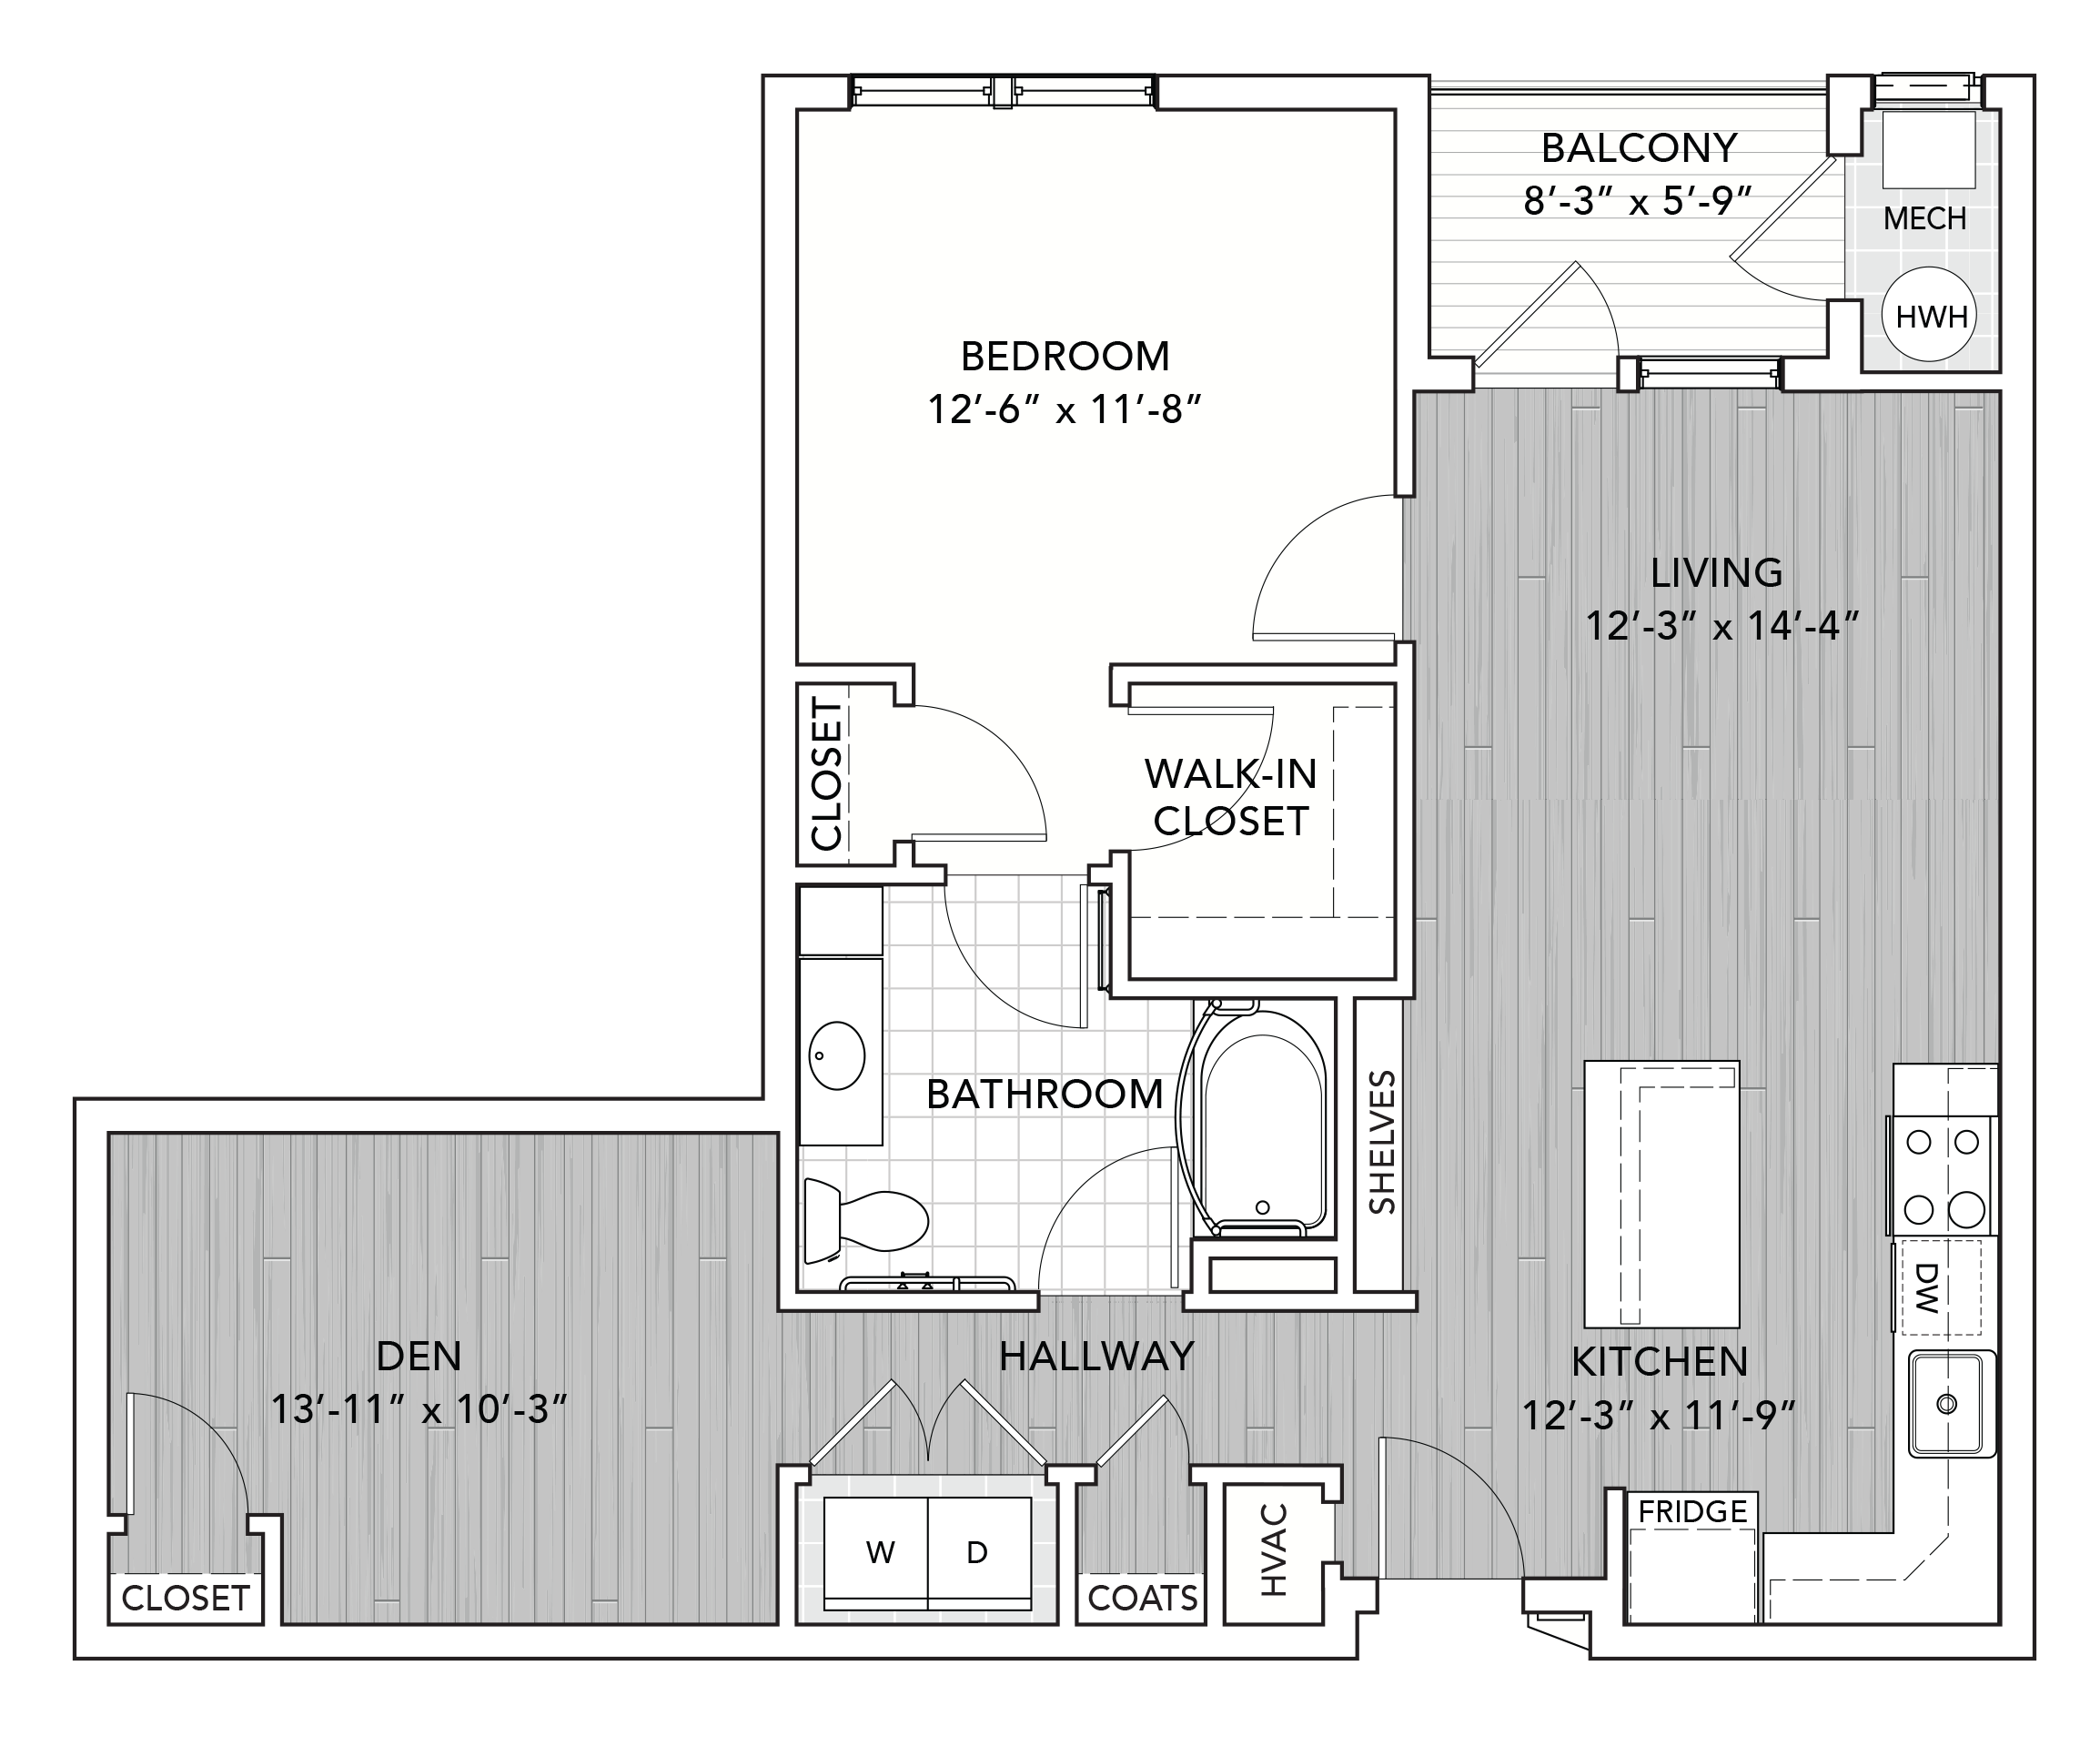 P0655013 parksquare a10 972 2 floorplan